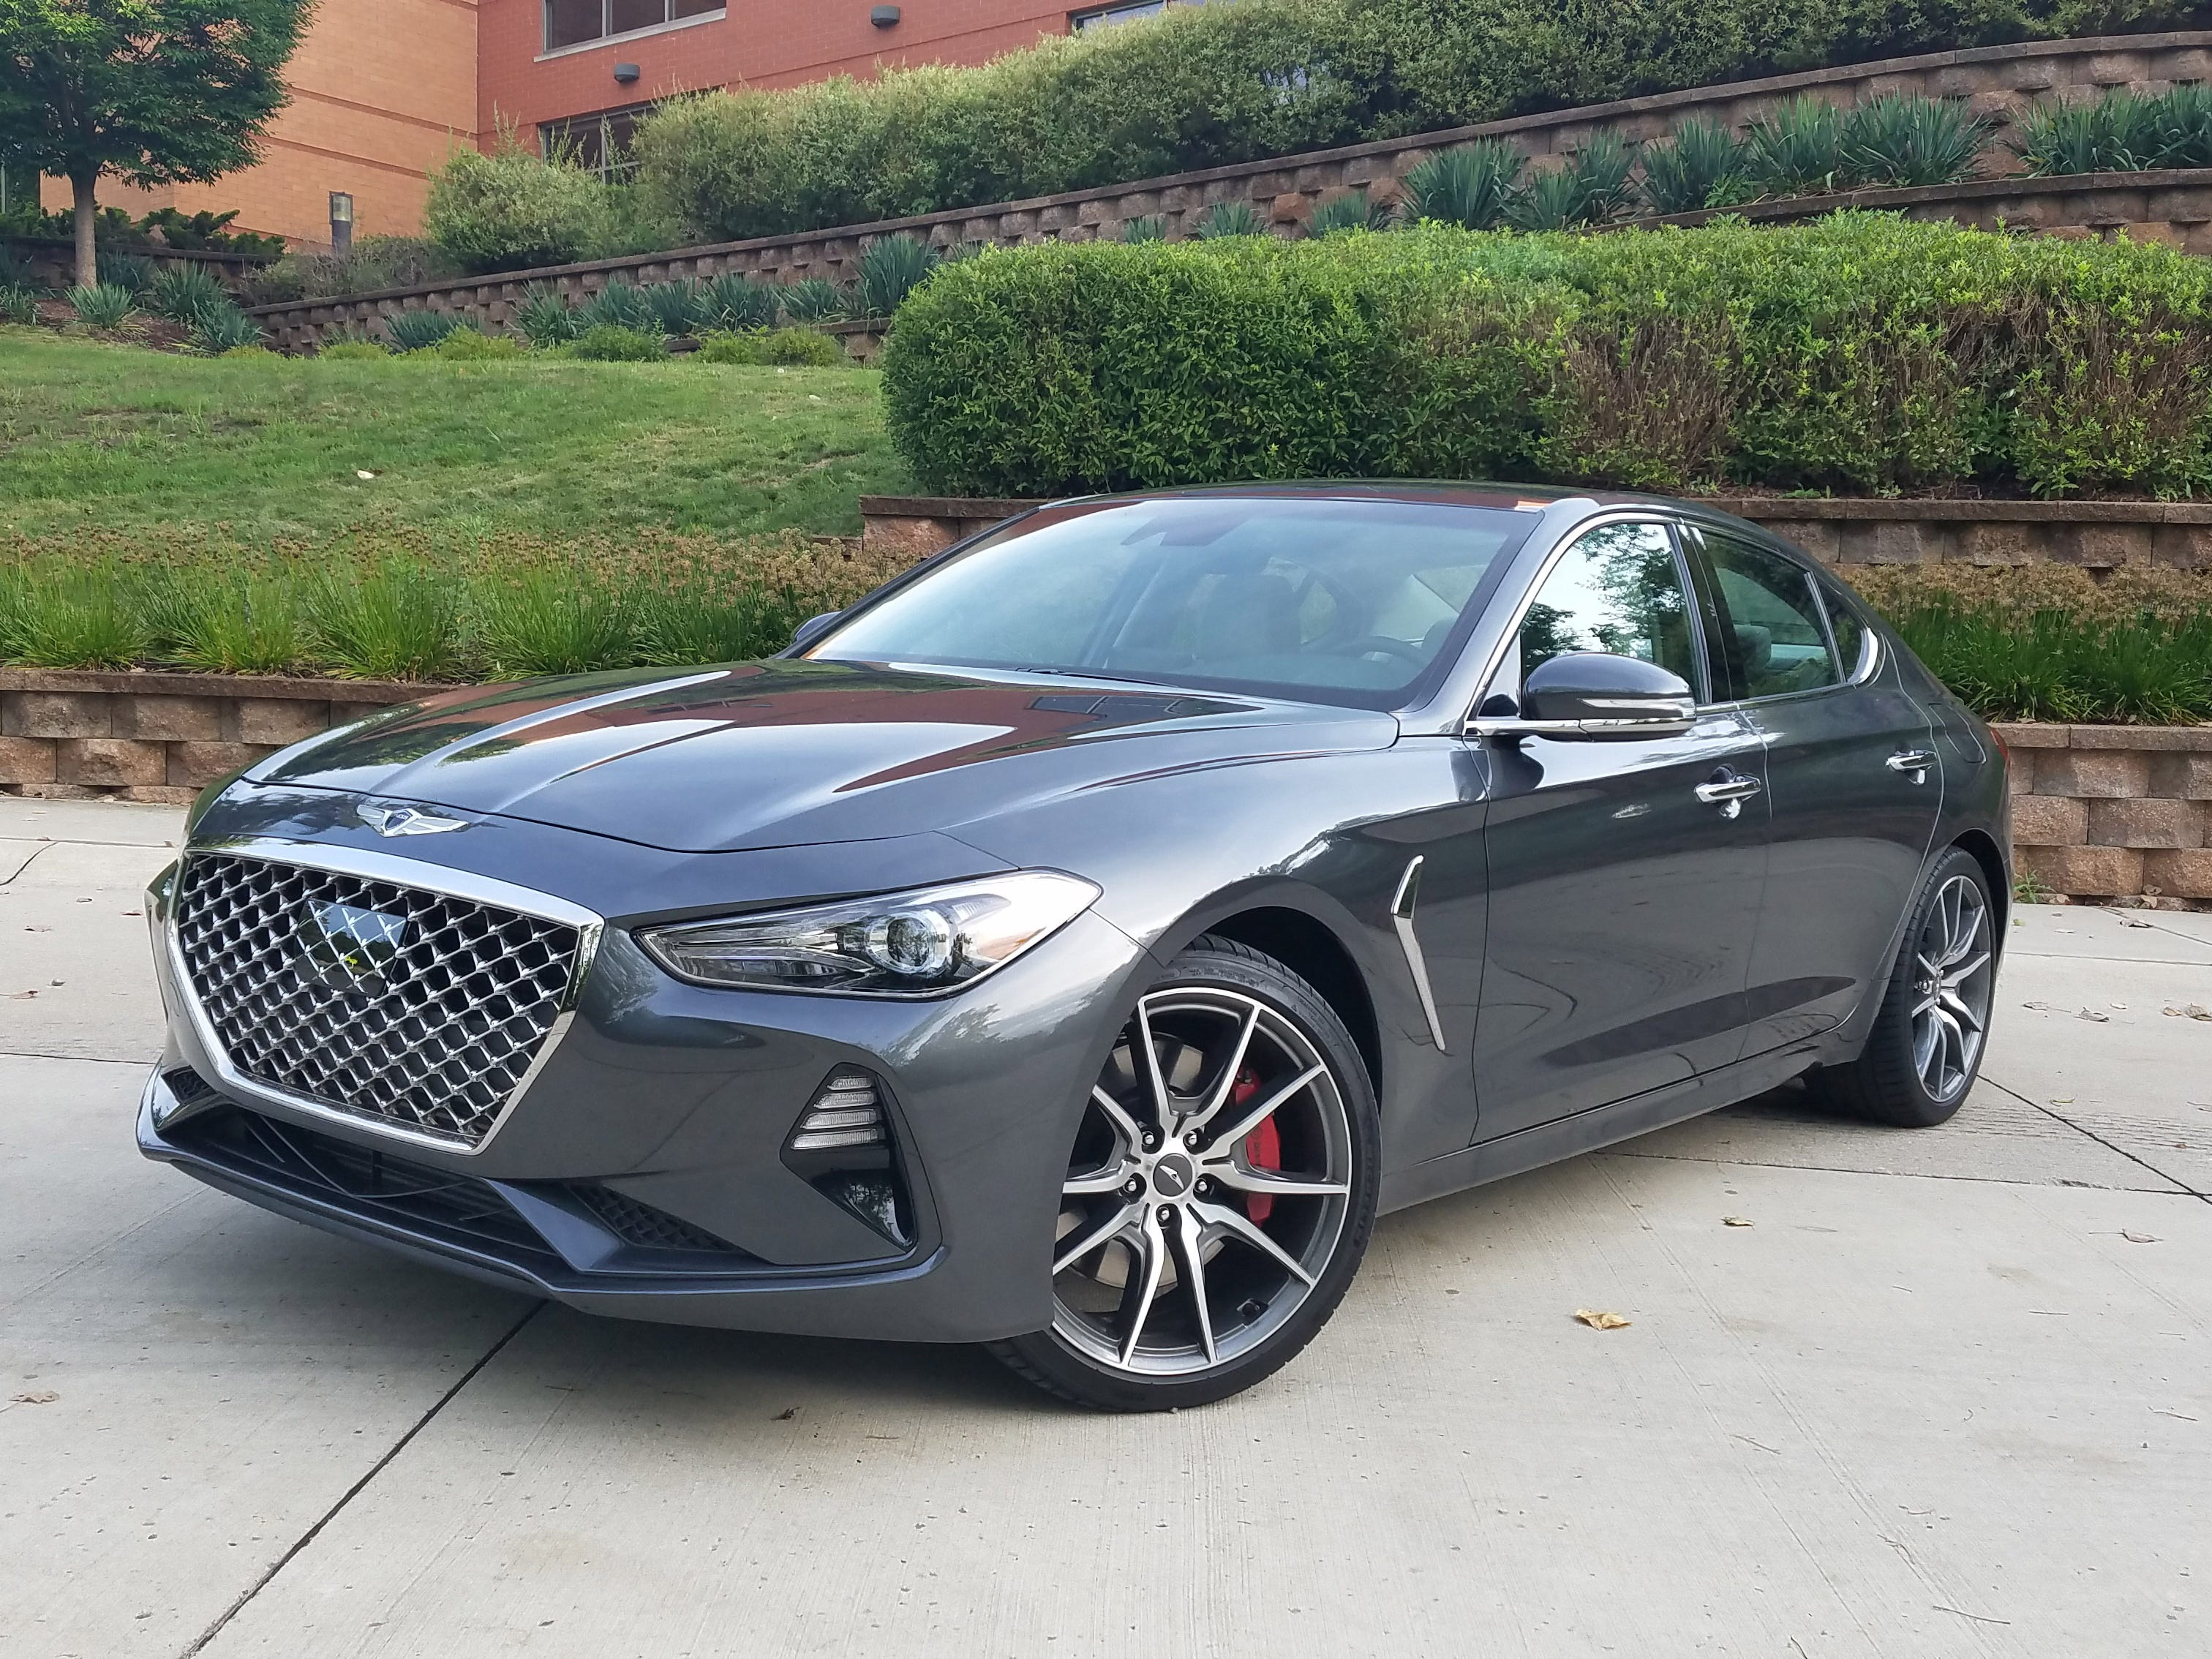 The finalists have been announced for the 2019 North American Car, Utility and Truck of the Year.  Car of the Year nominees include the 2019 Genesis G70, seen in the  Sport model with a manual transmission.